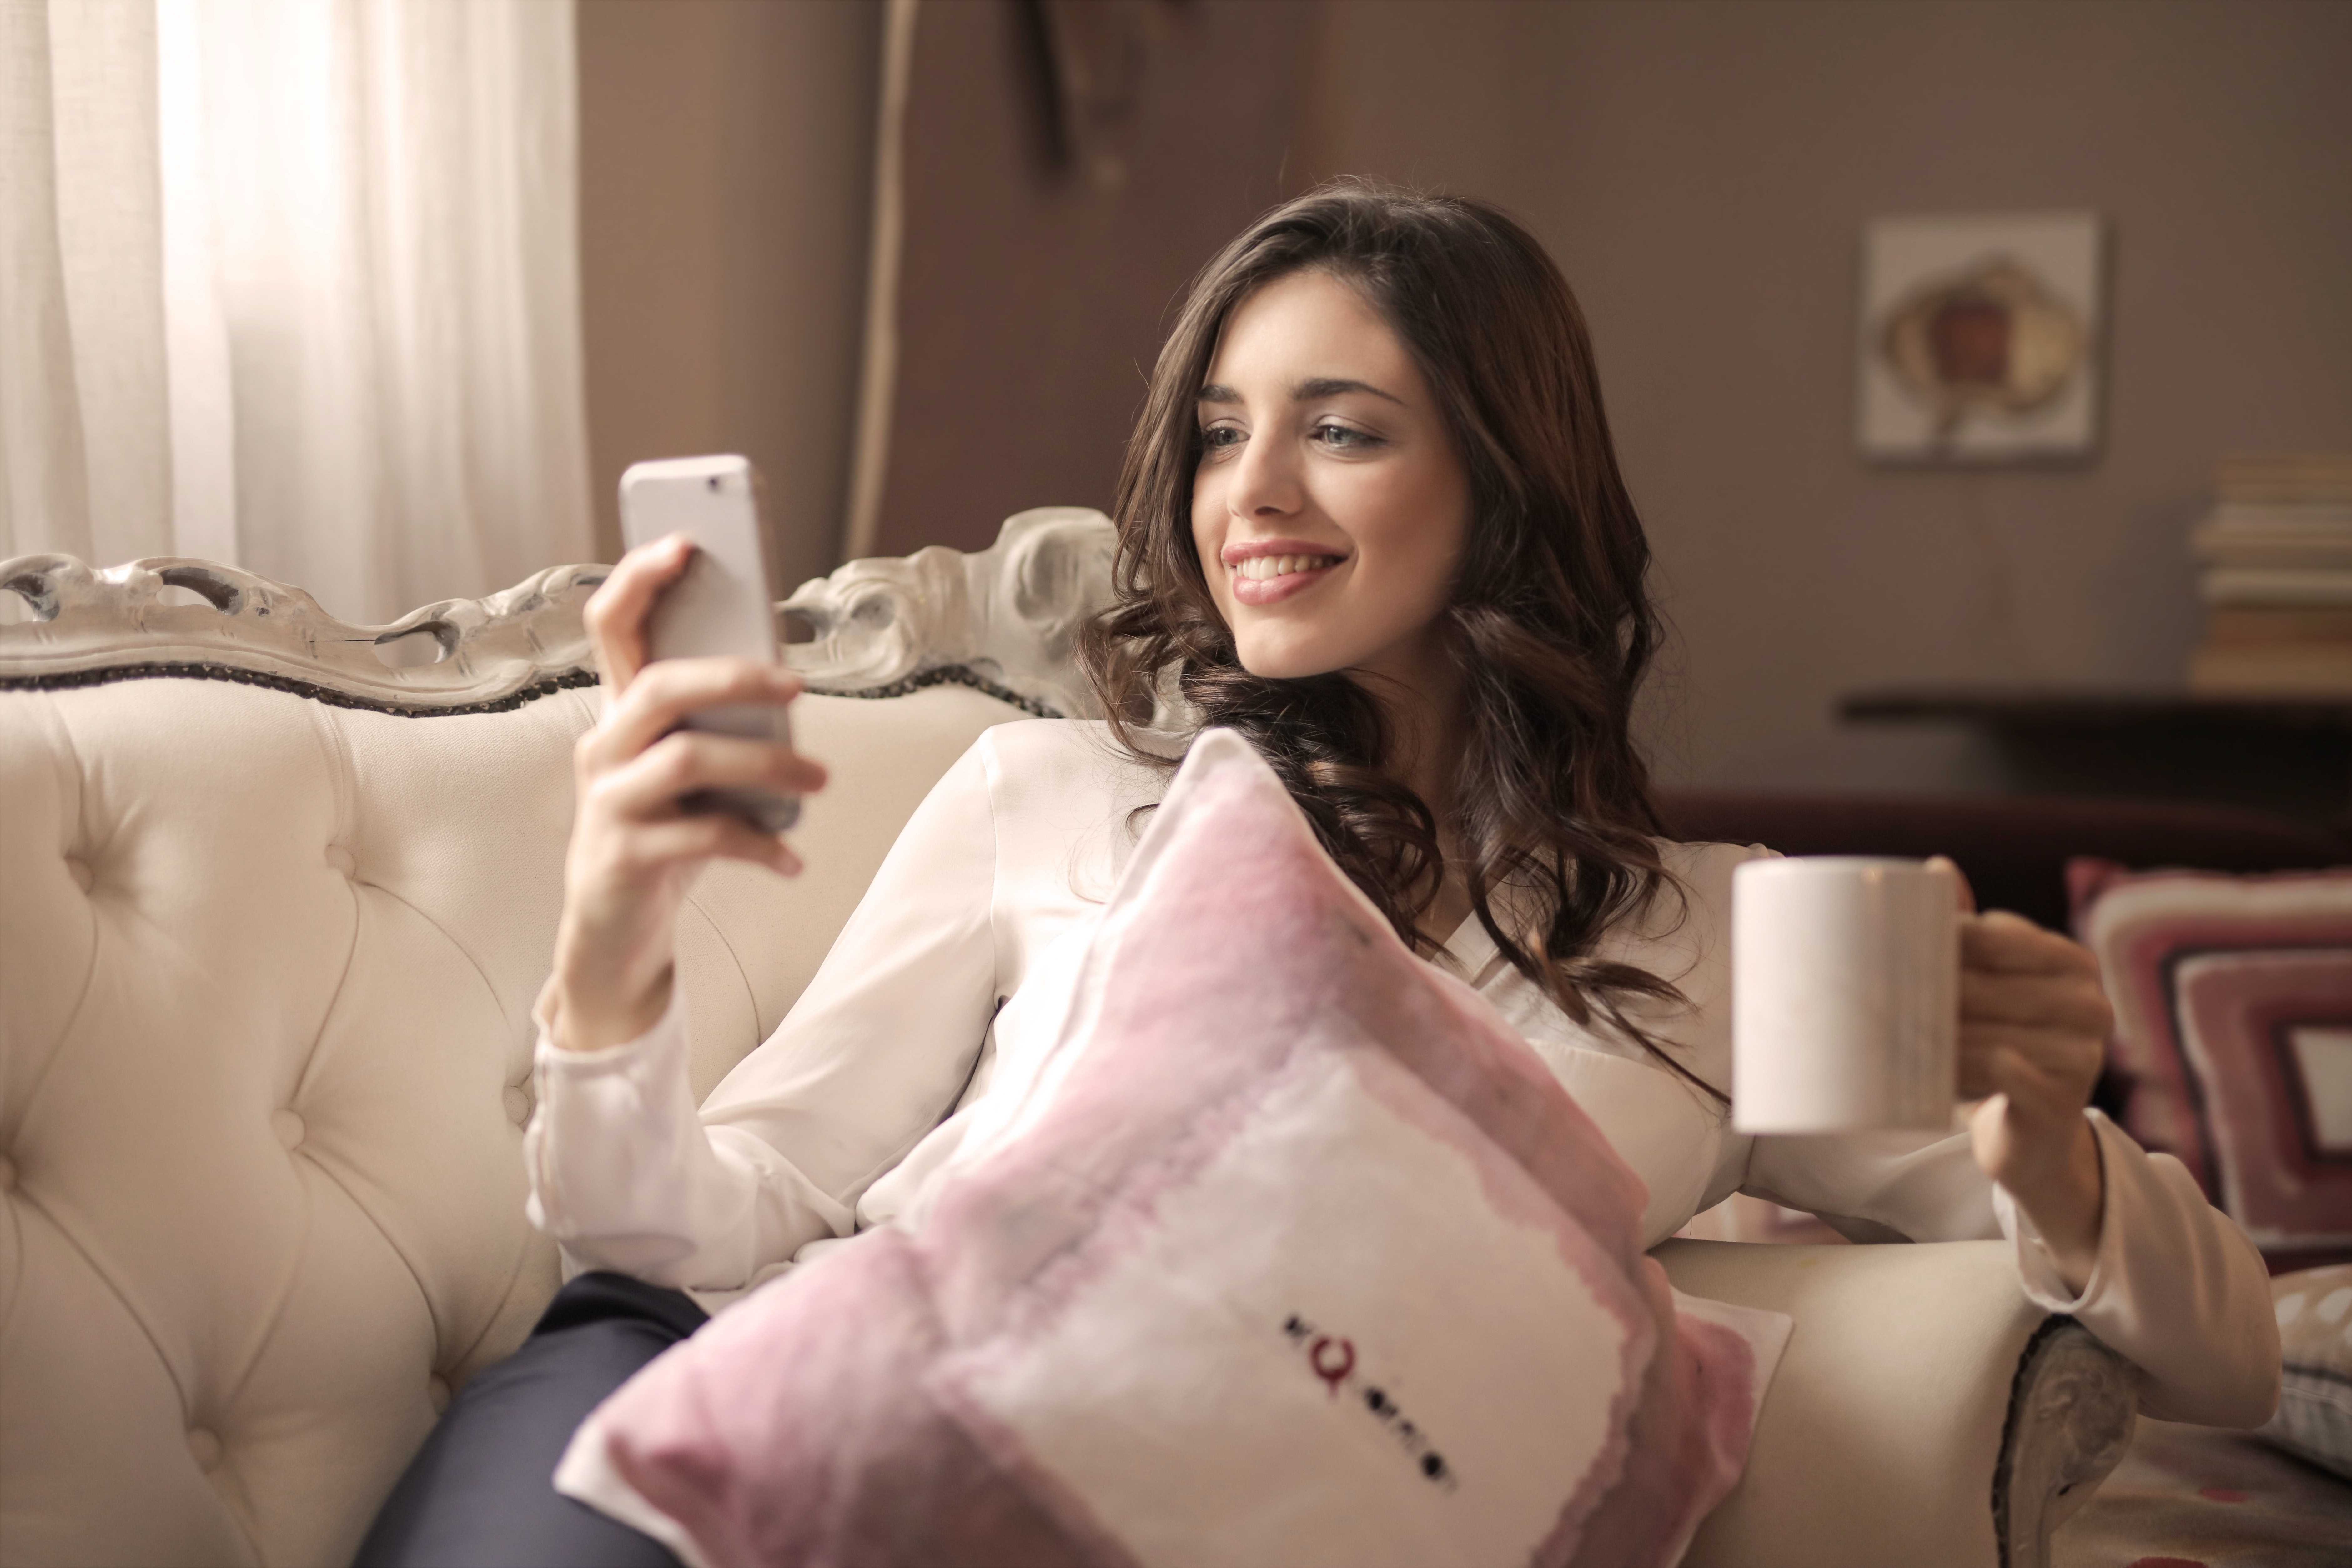 Woman in White Long-sleeved Shirt Holding Smartphone Sitting on Tufted Sofa, Sit, Portrait, Relax, Relaxation, HQ Photo